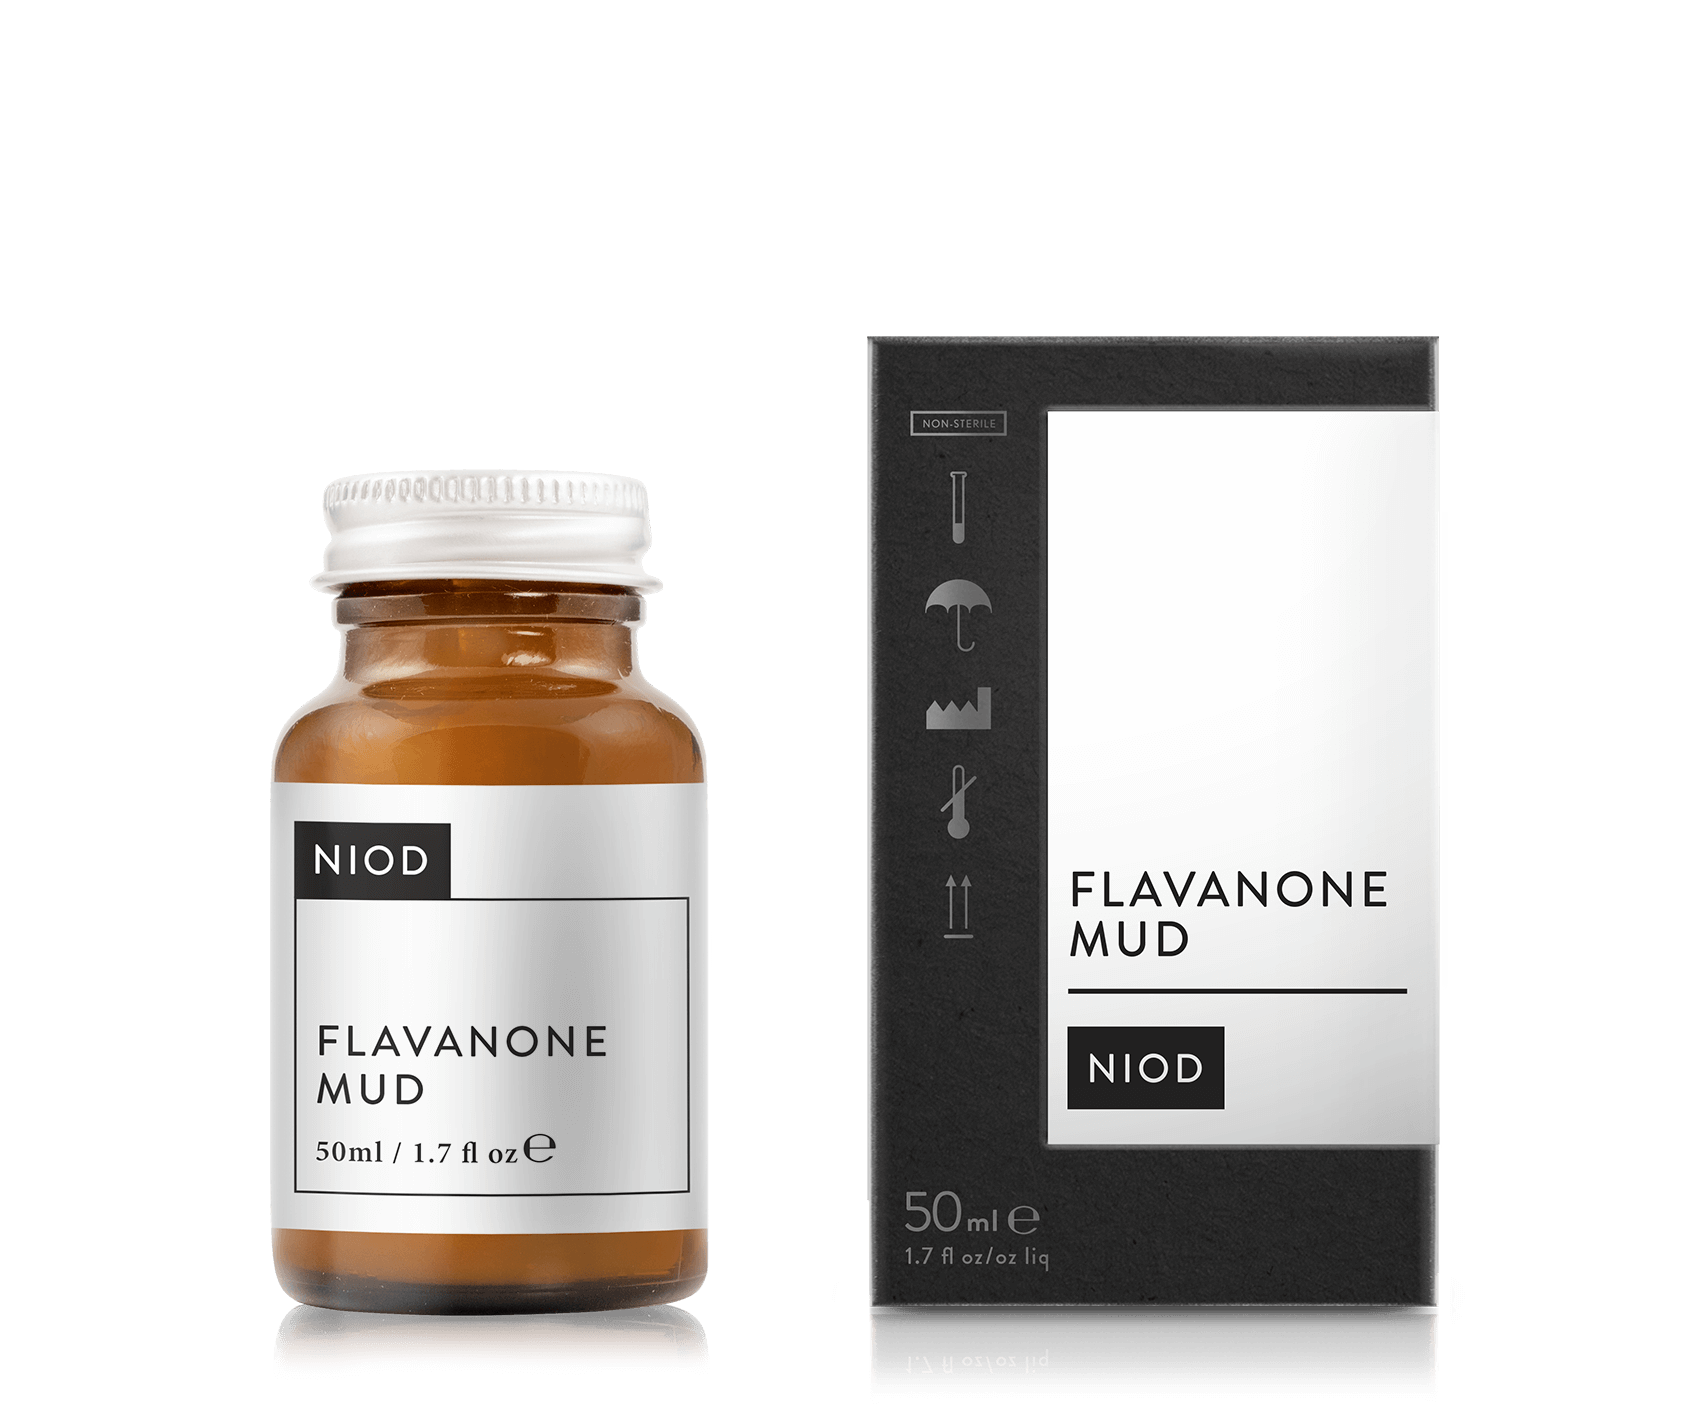 Flavanone Mud by Niod